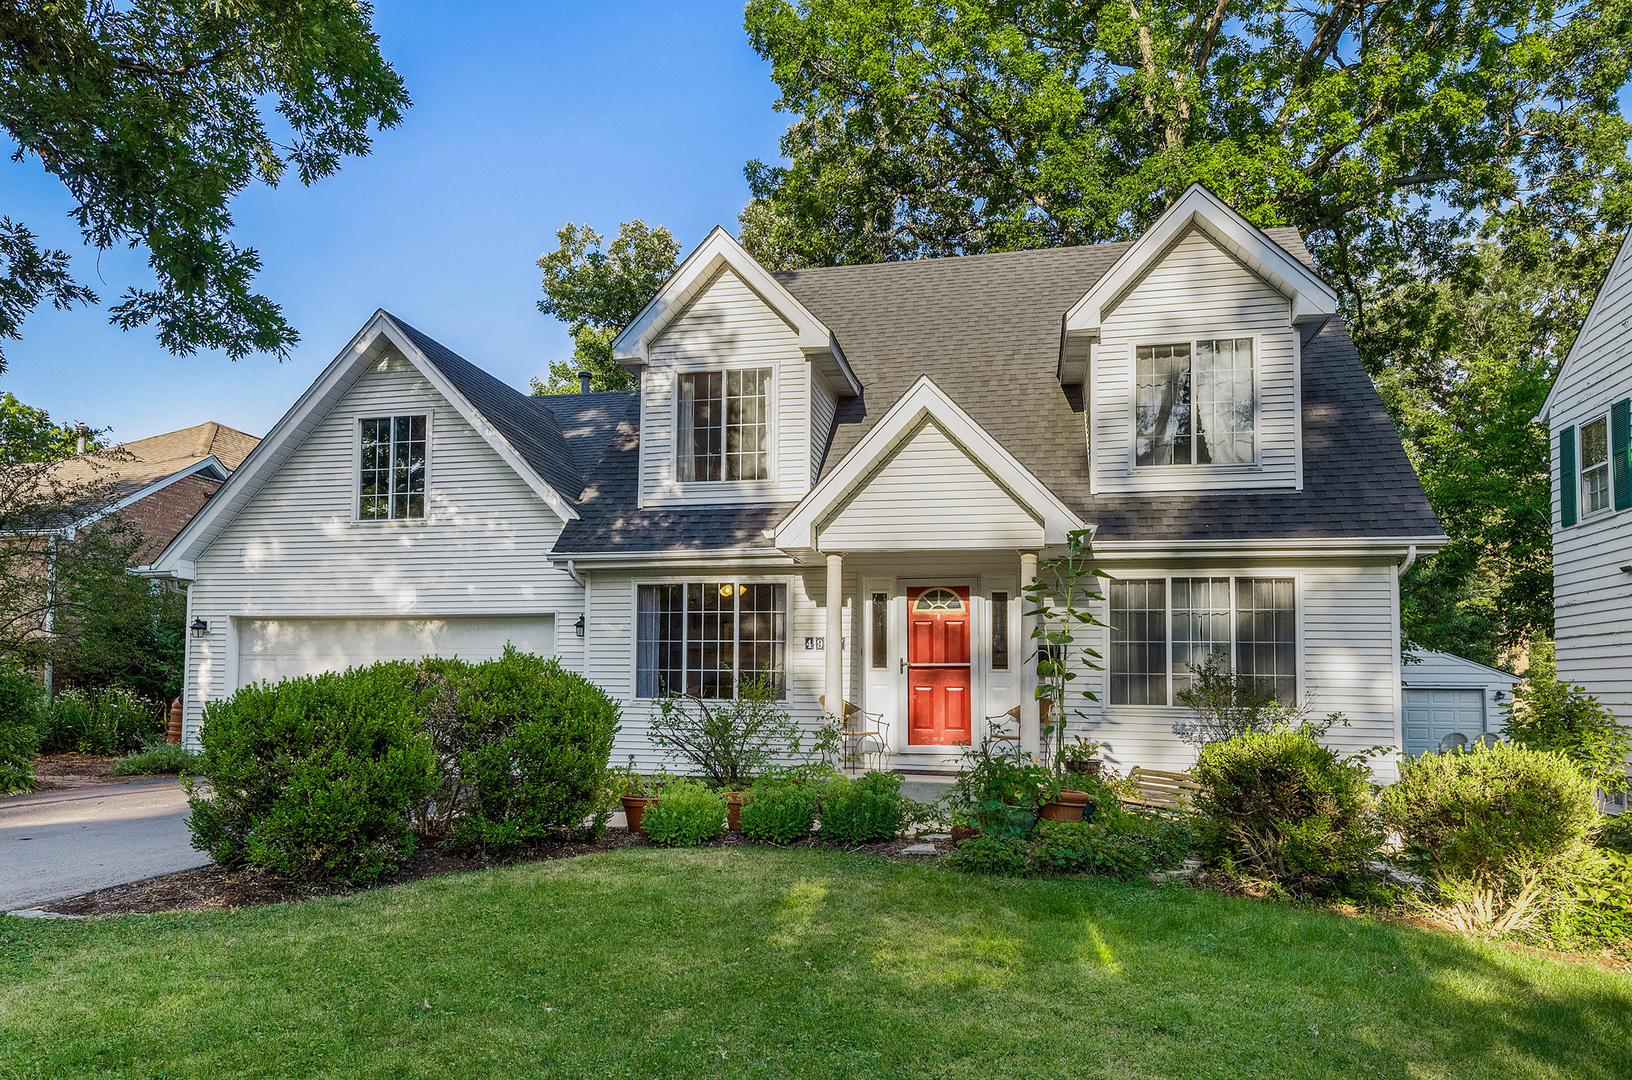 Photo for 4907 Seeley Avenue, Downers Grove, IL 60515 (MLS # 10818555)